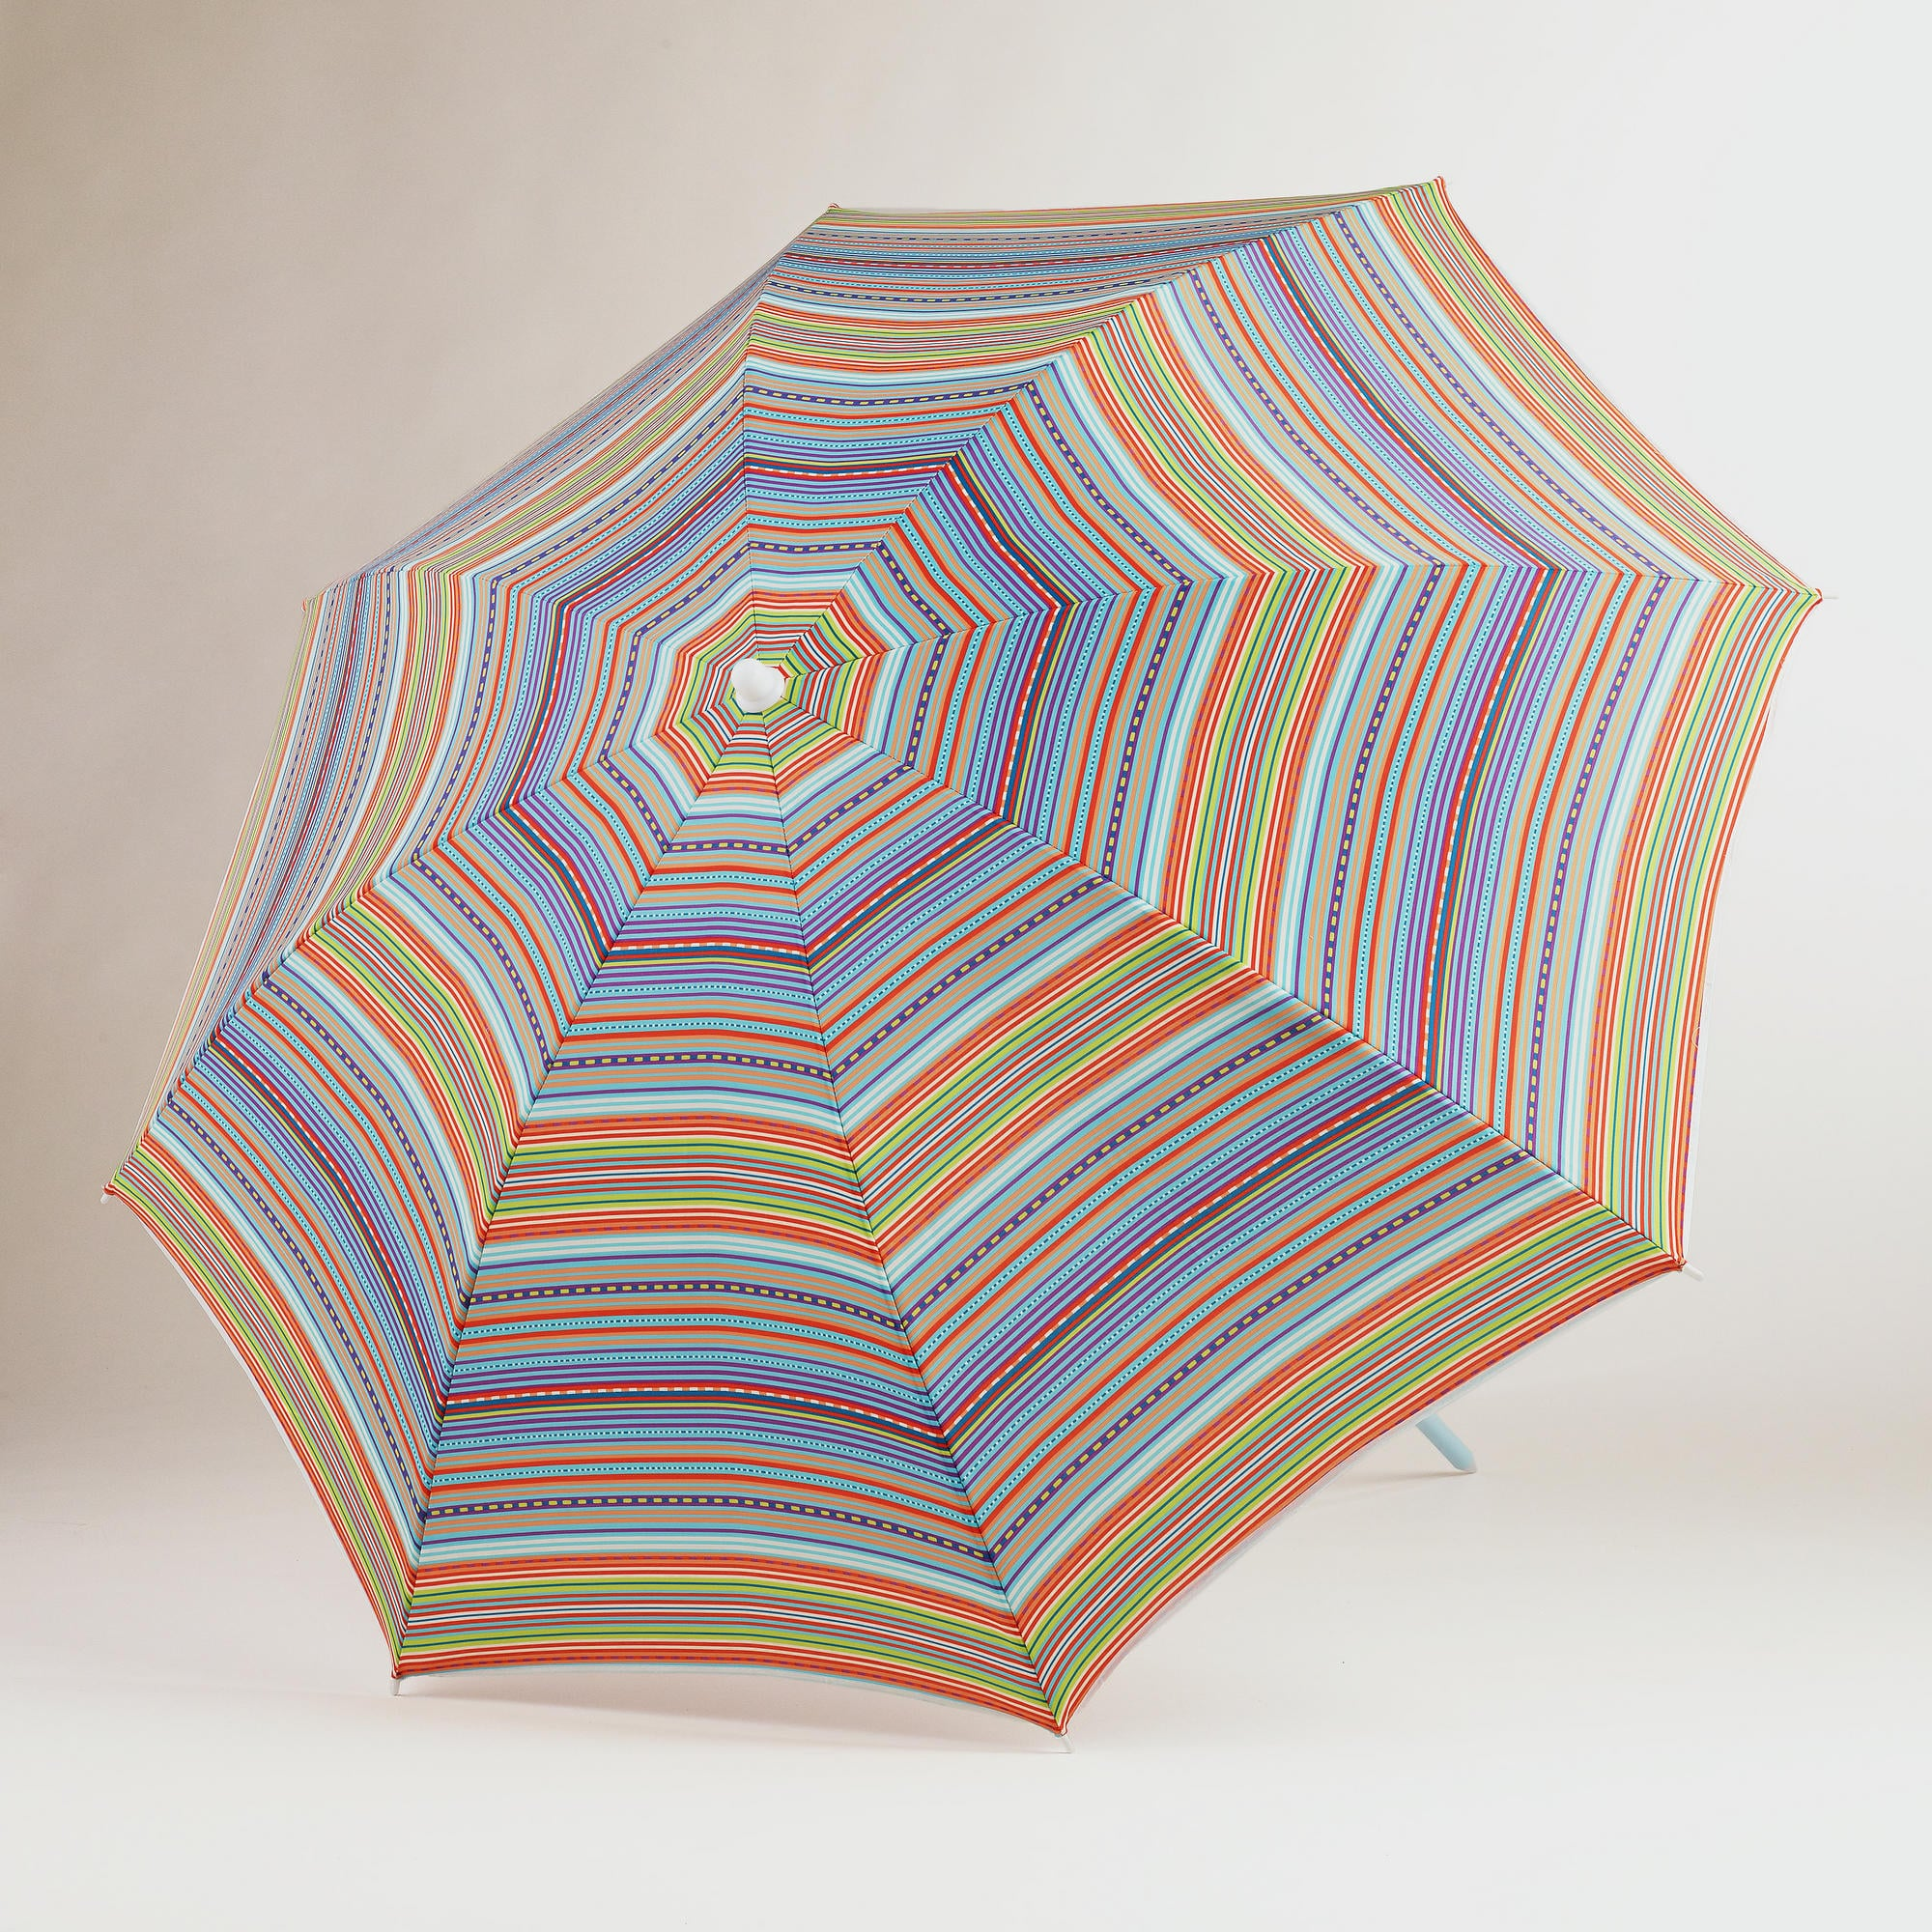 This multicolored, striped umbrella ($17) from World Market is gorgeous — and so affordable.